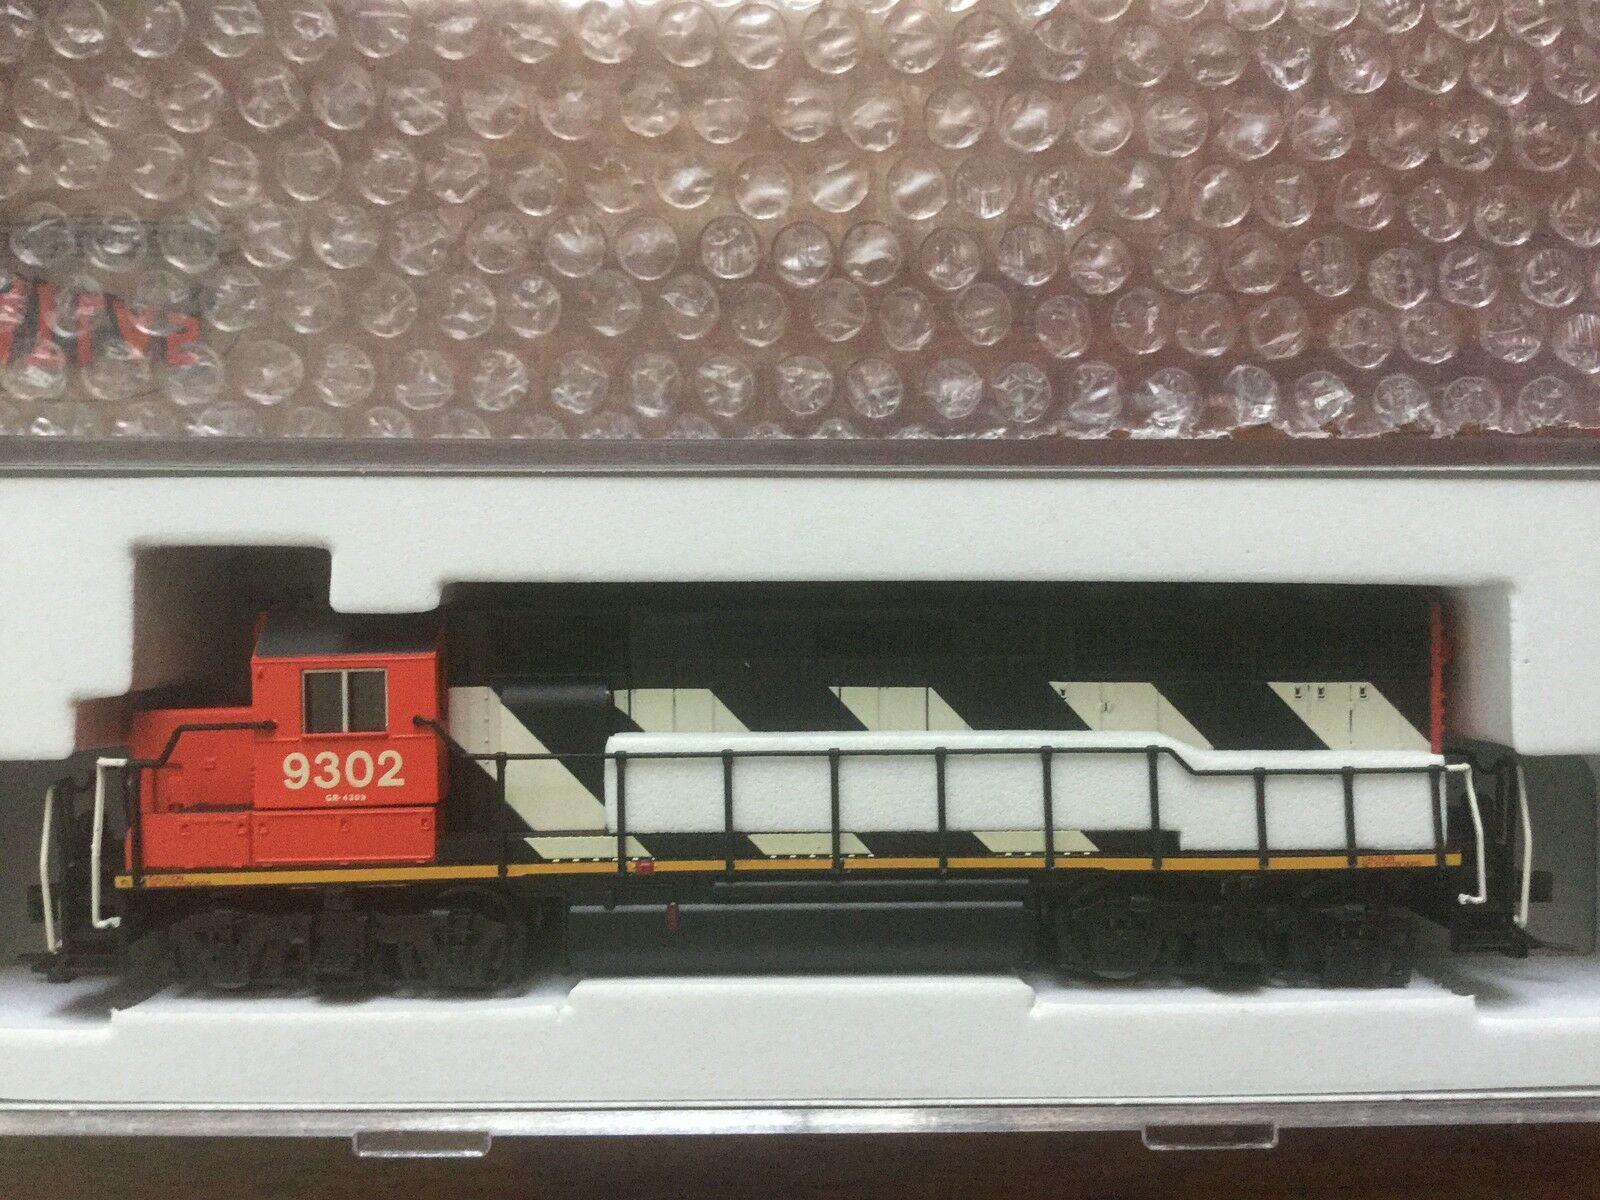 ATLAS 1 160 N SCALE CANADIAN CANADIAN CANADIAN NATIONAL EMD GP40 DCC RD   9302 ITEM   40001934 F S 252b44